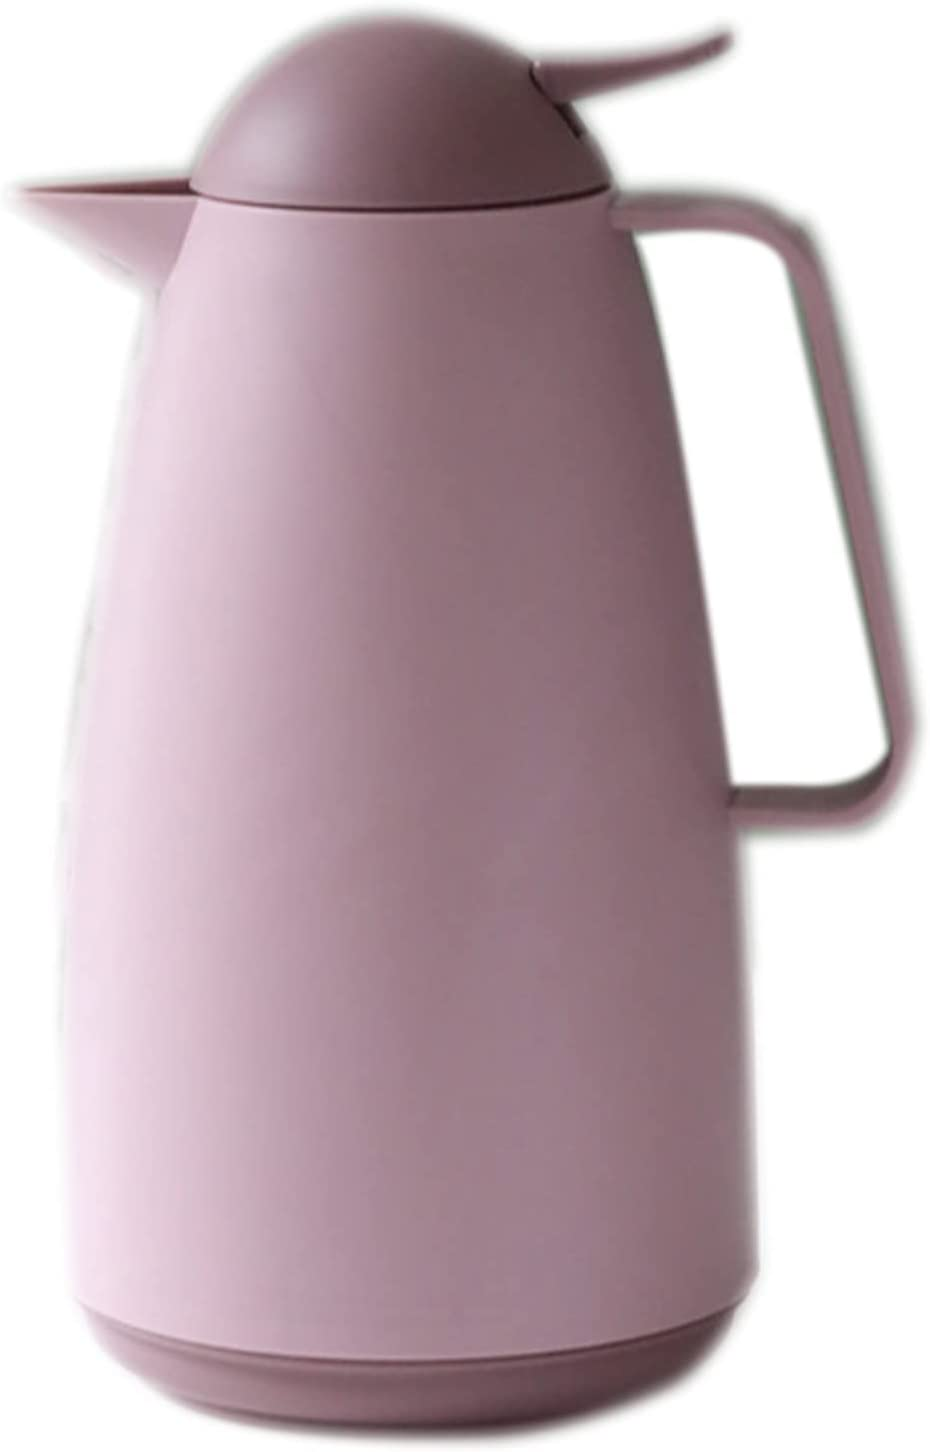 FDQNDXF Online limited product 32 oz Coffee Carafe Direct sale of manufacturer Walled Vacuum Insulat Double Durable